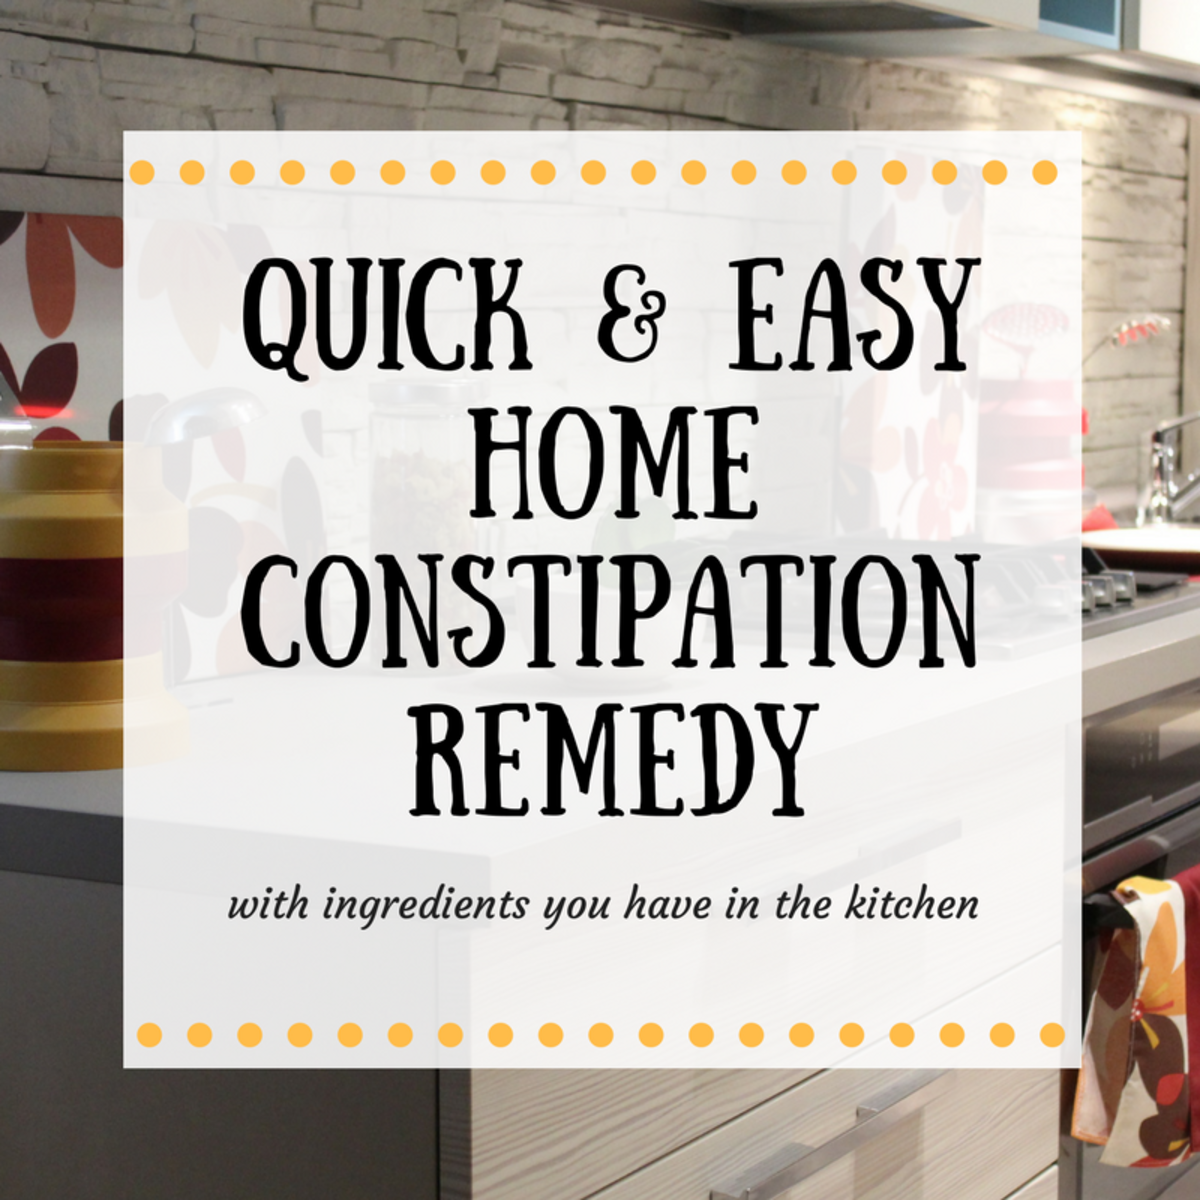 A Natural Home Remedy for Constipation